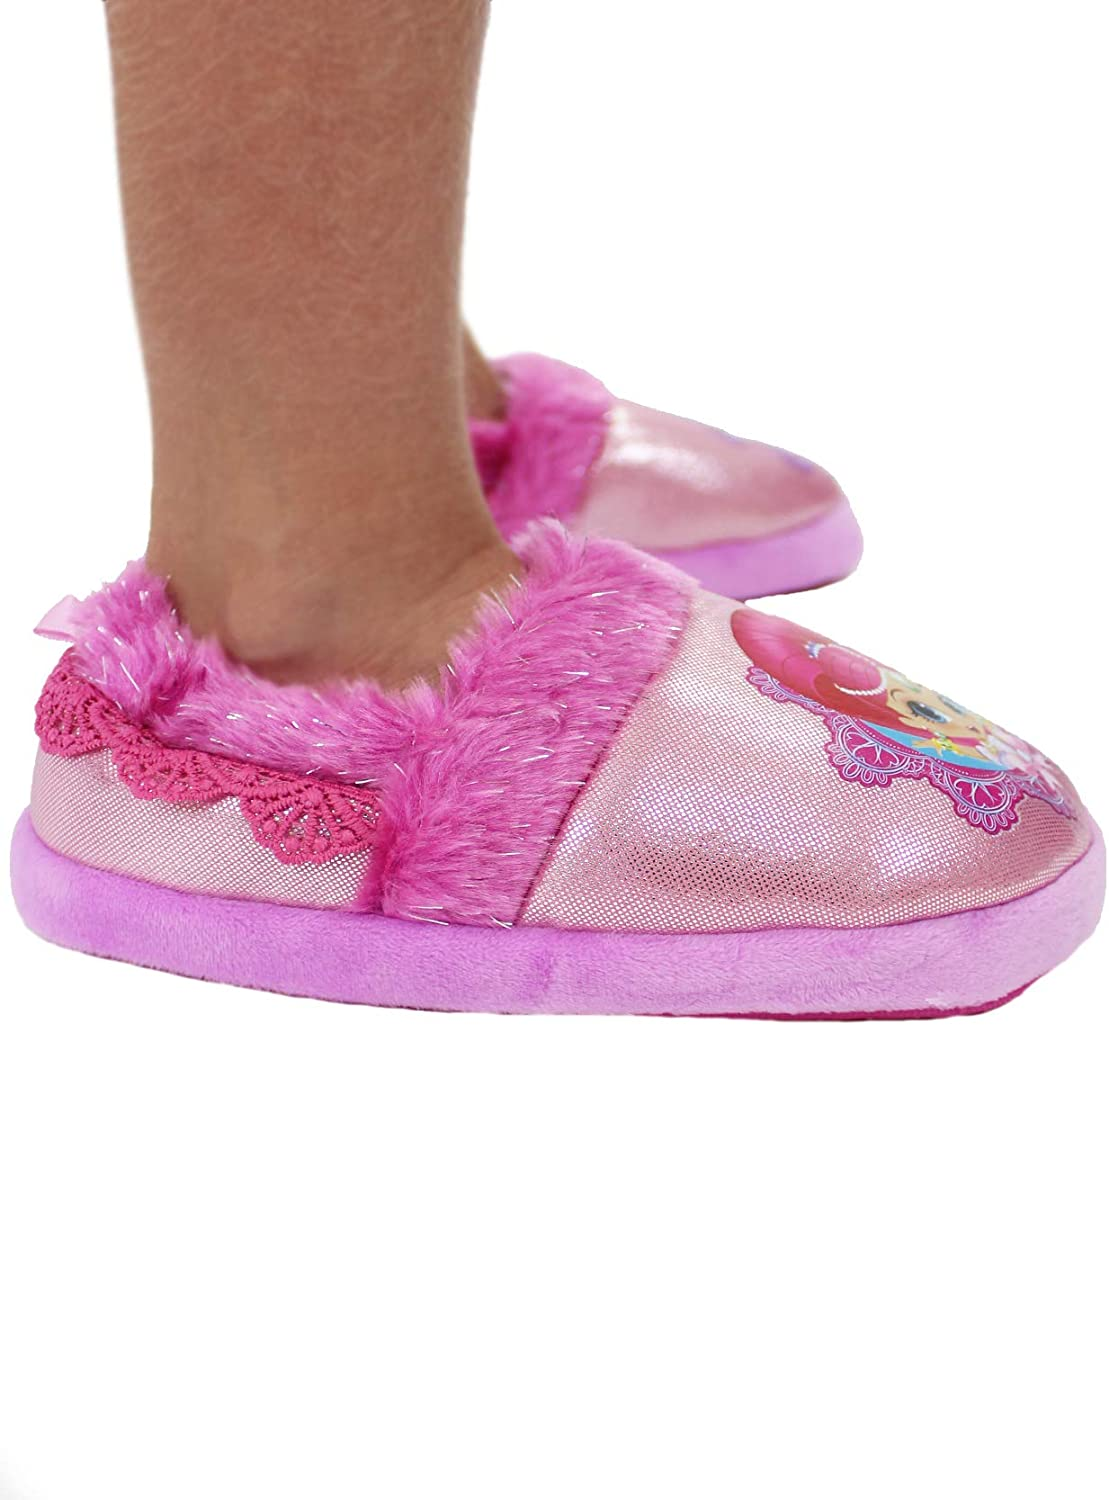 Nickelodeon Shimmer and Shine Toddler Girls Plush Aline Slippers